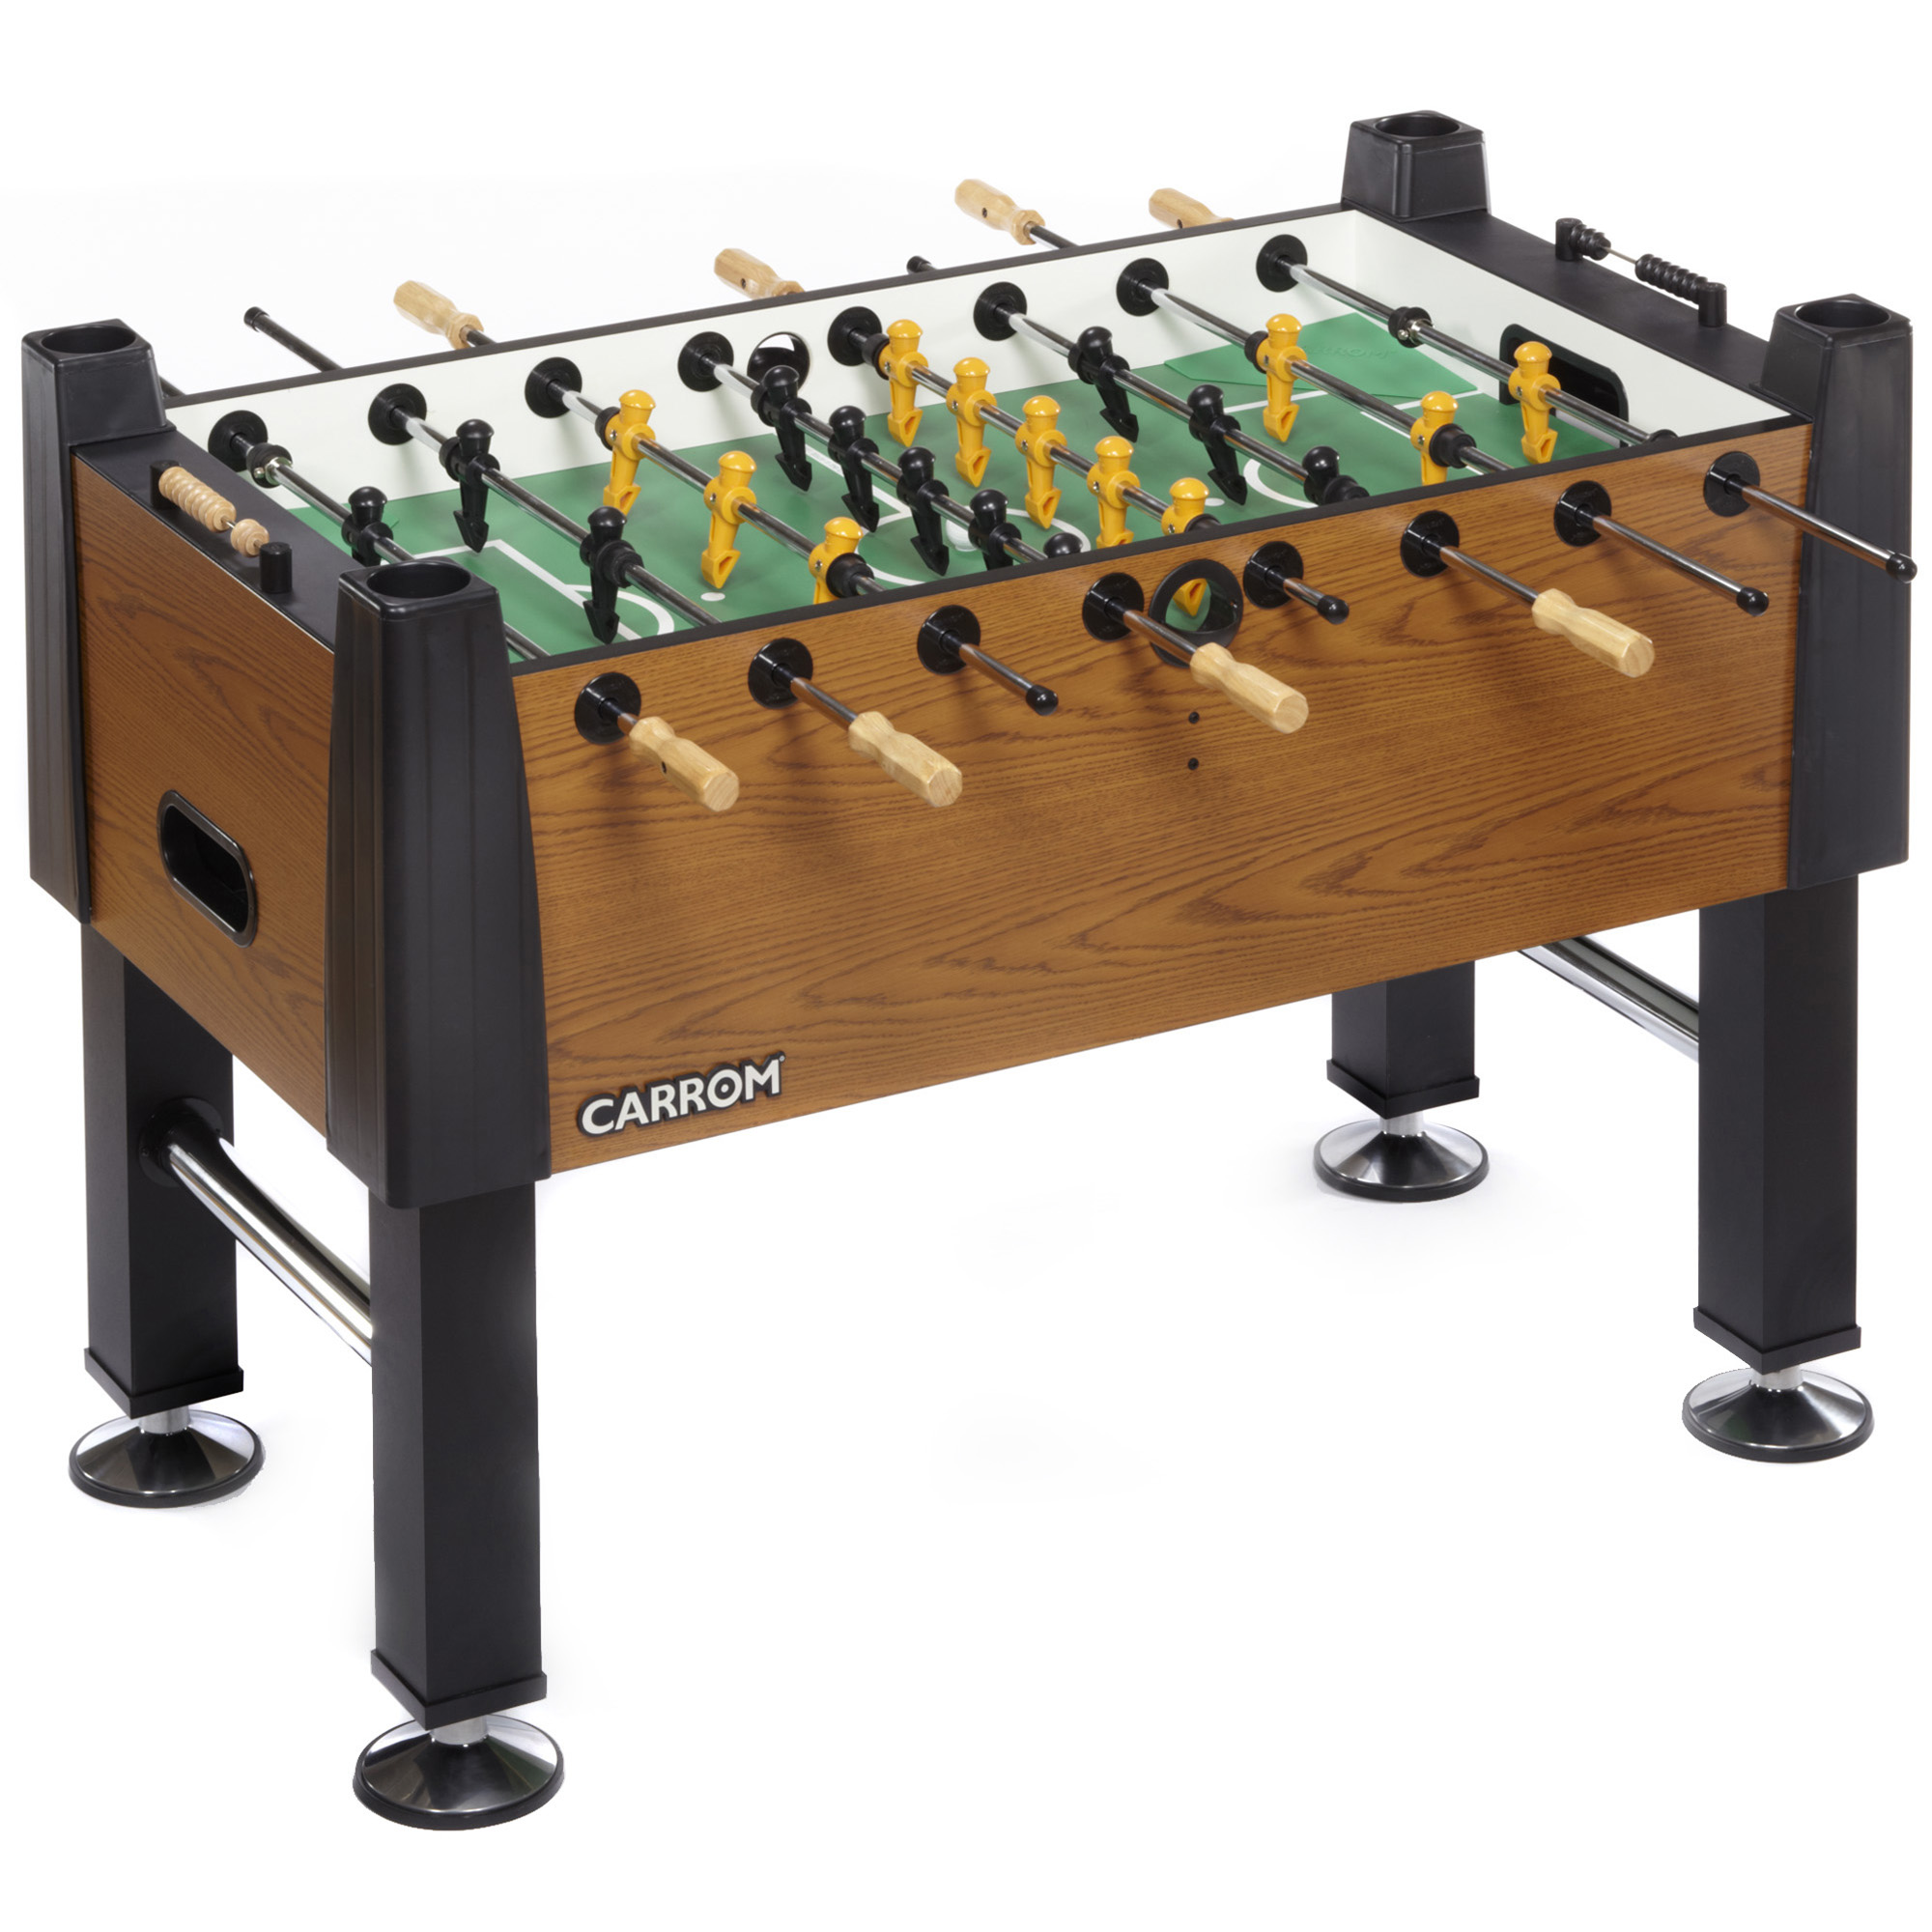 Oak Signature Foosball Table Carrom pany